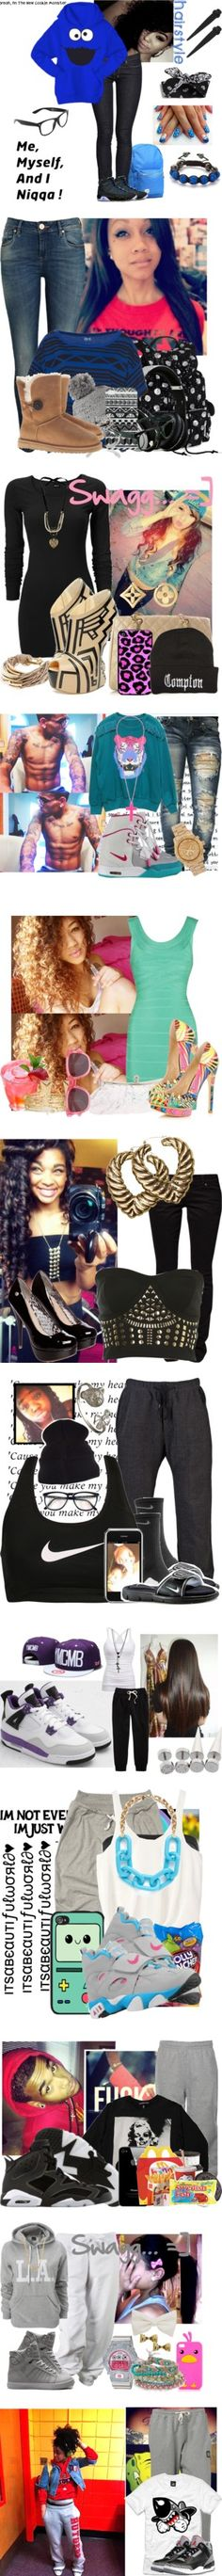 """""""major"""" by calichica ❤ liked on Polyvore"""